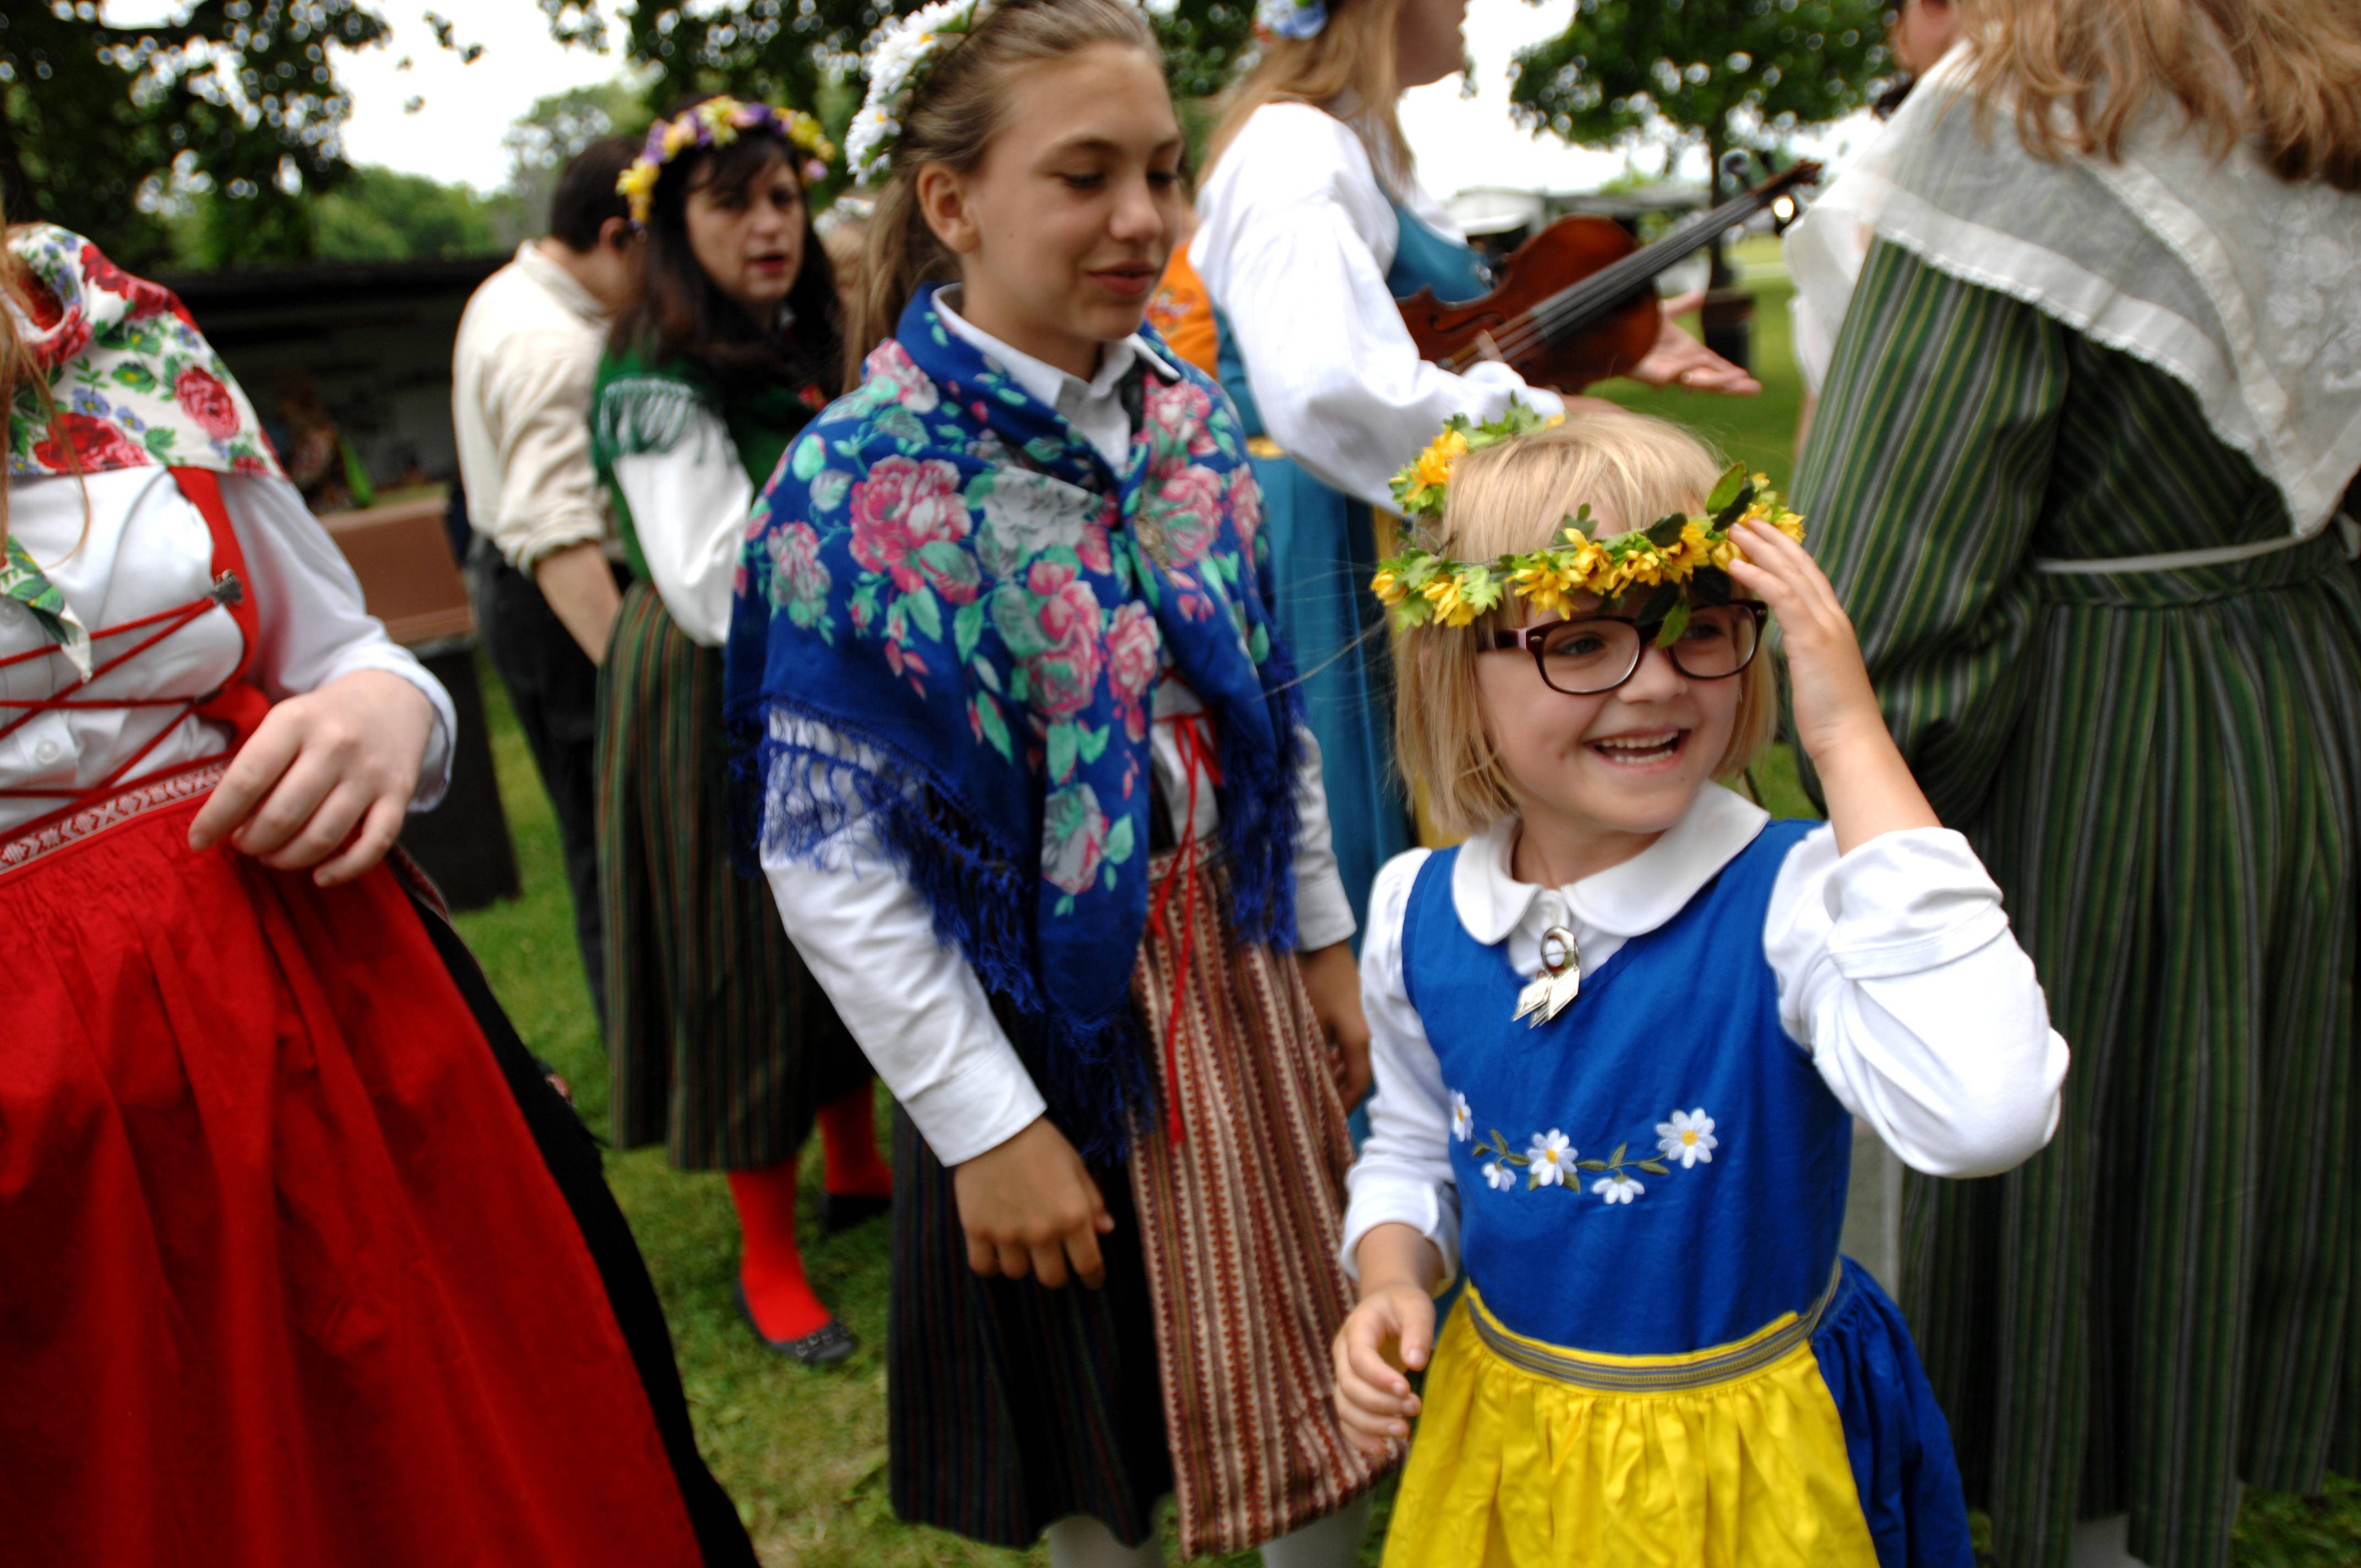 Kyley Cahill, 7, of Sycamore adjusts her flower crown after greeting her friend Sydney Poss, 11, of North Aurora Sunday at the 104th annual Swedish Day Midsommar Festival in Geneva. Cahill and Poss are members of the Swedish American Children's Choir, the largest Swedish children's choir in the Midwest, with 32 members ages 4-16.